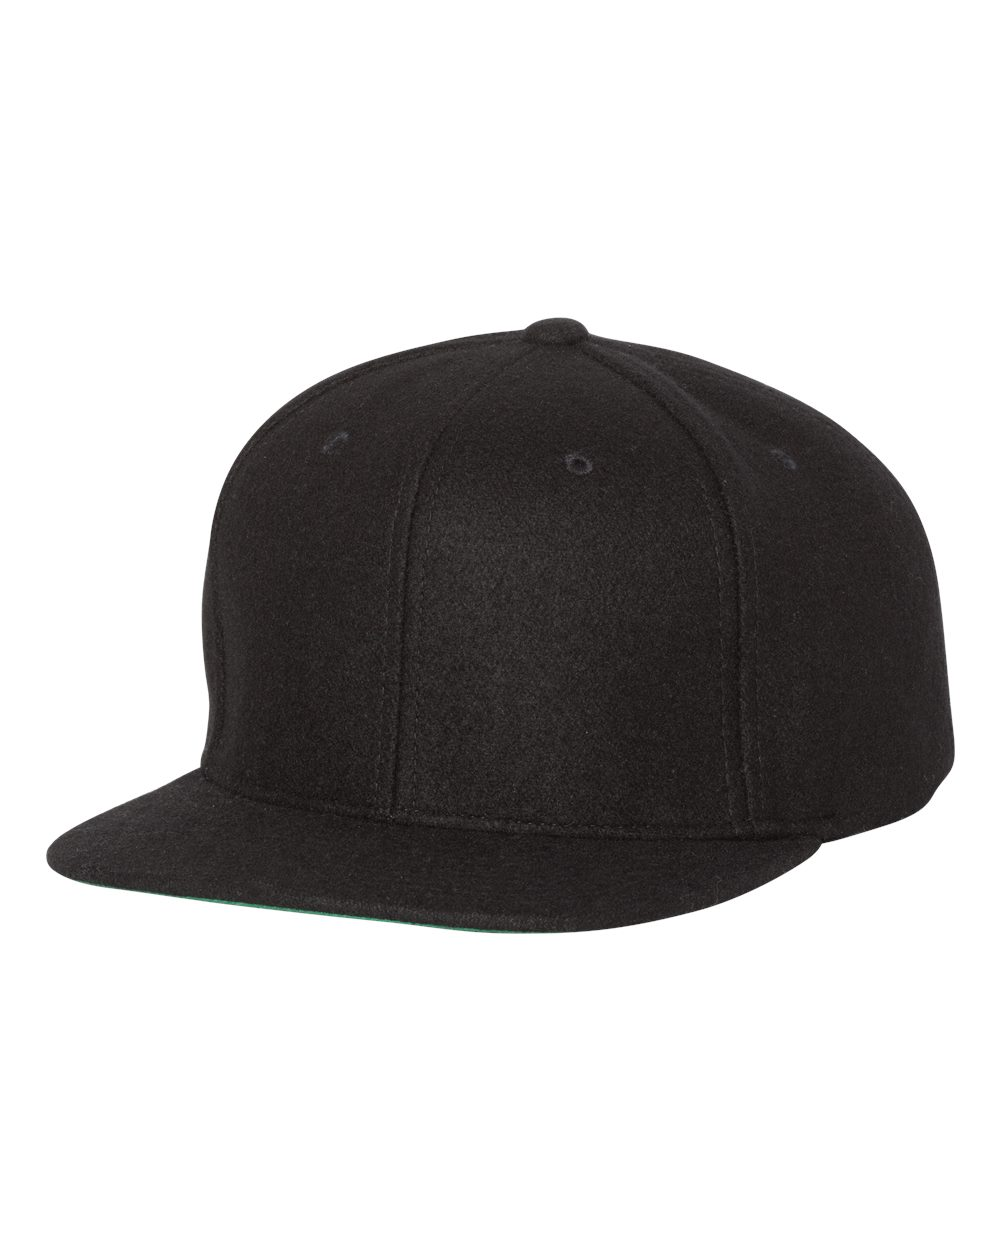 Yupoong 6689 - Melton Wool Adjustable Cap